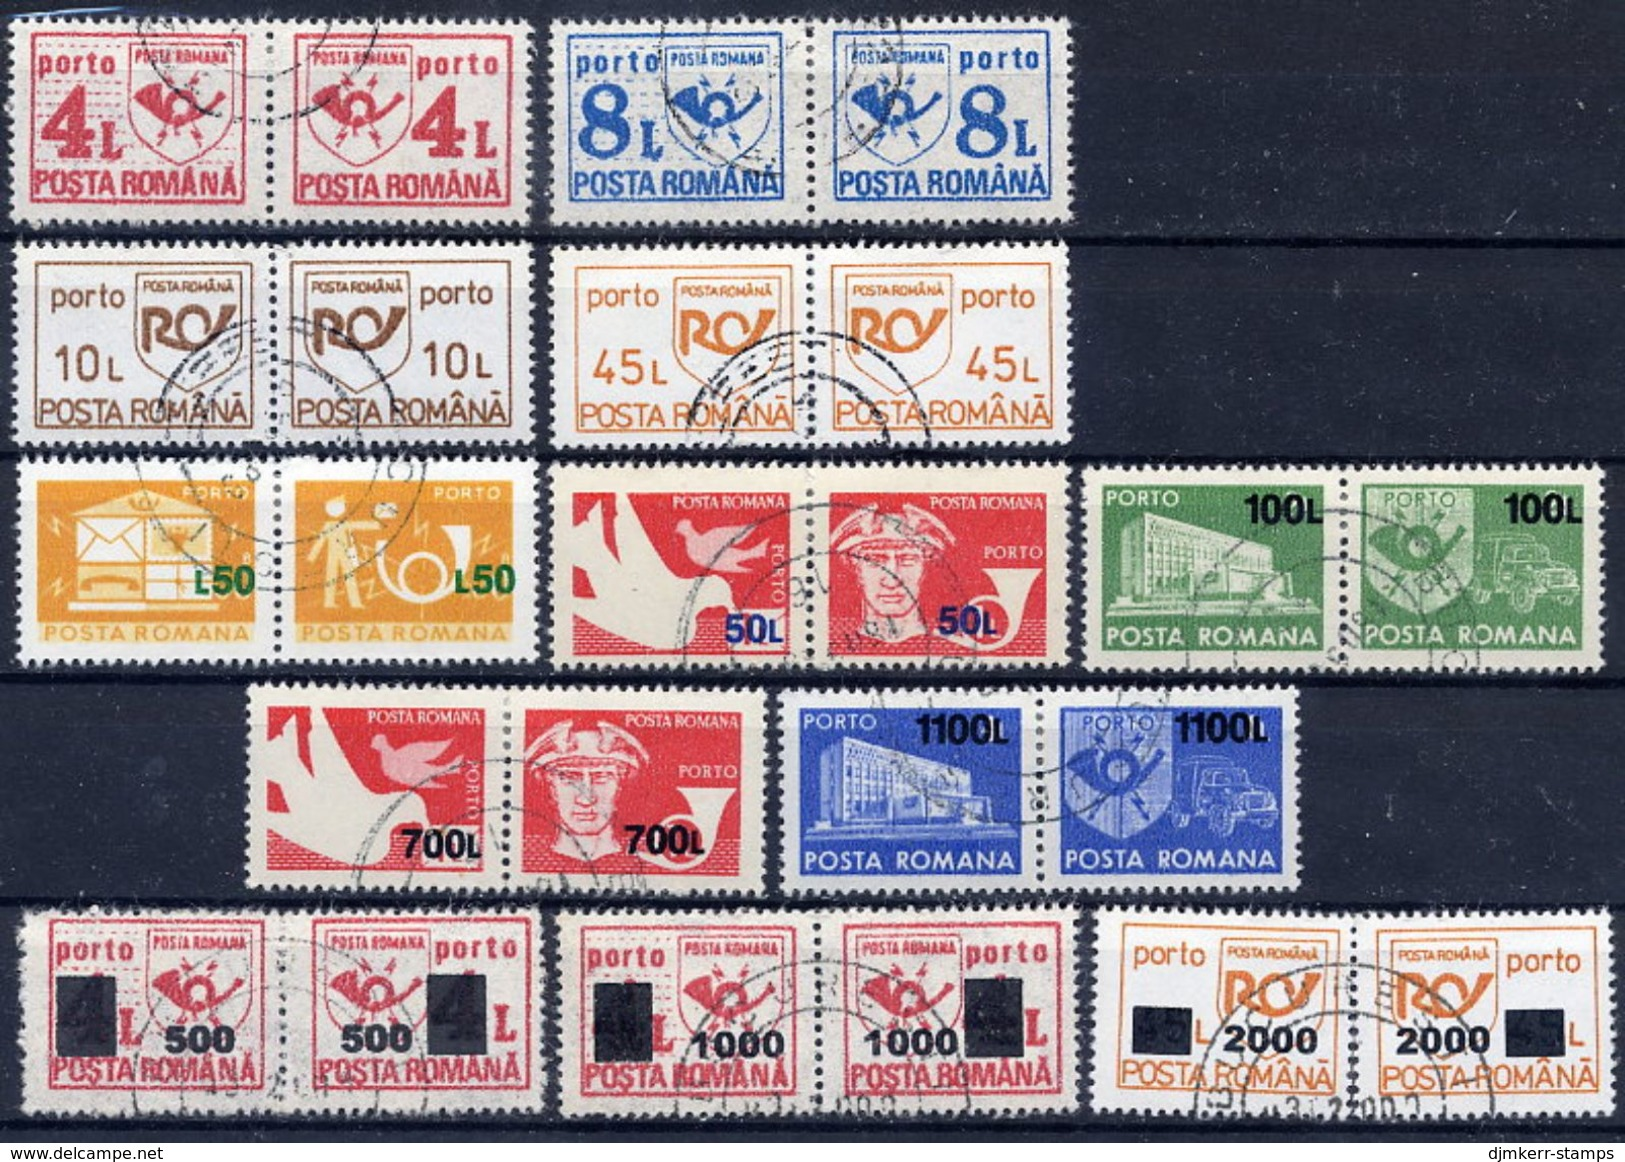 ROMANIA 1957-2001 Postage Due Issues Complete Used.  Michel Porto 101-142 (3 Scans) - Postage Due